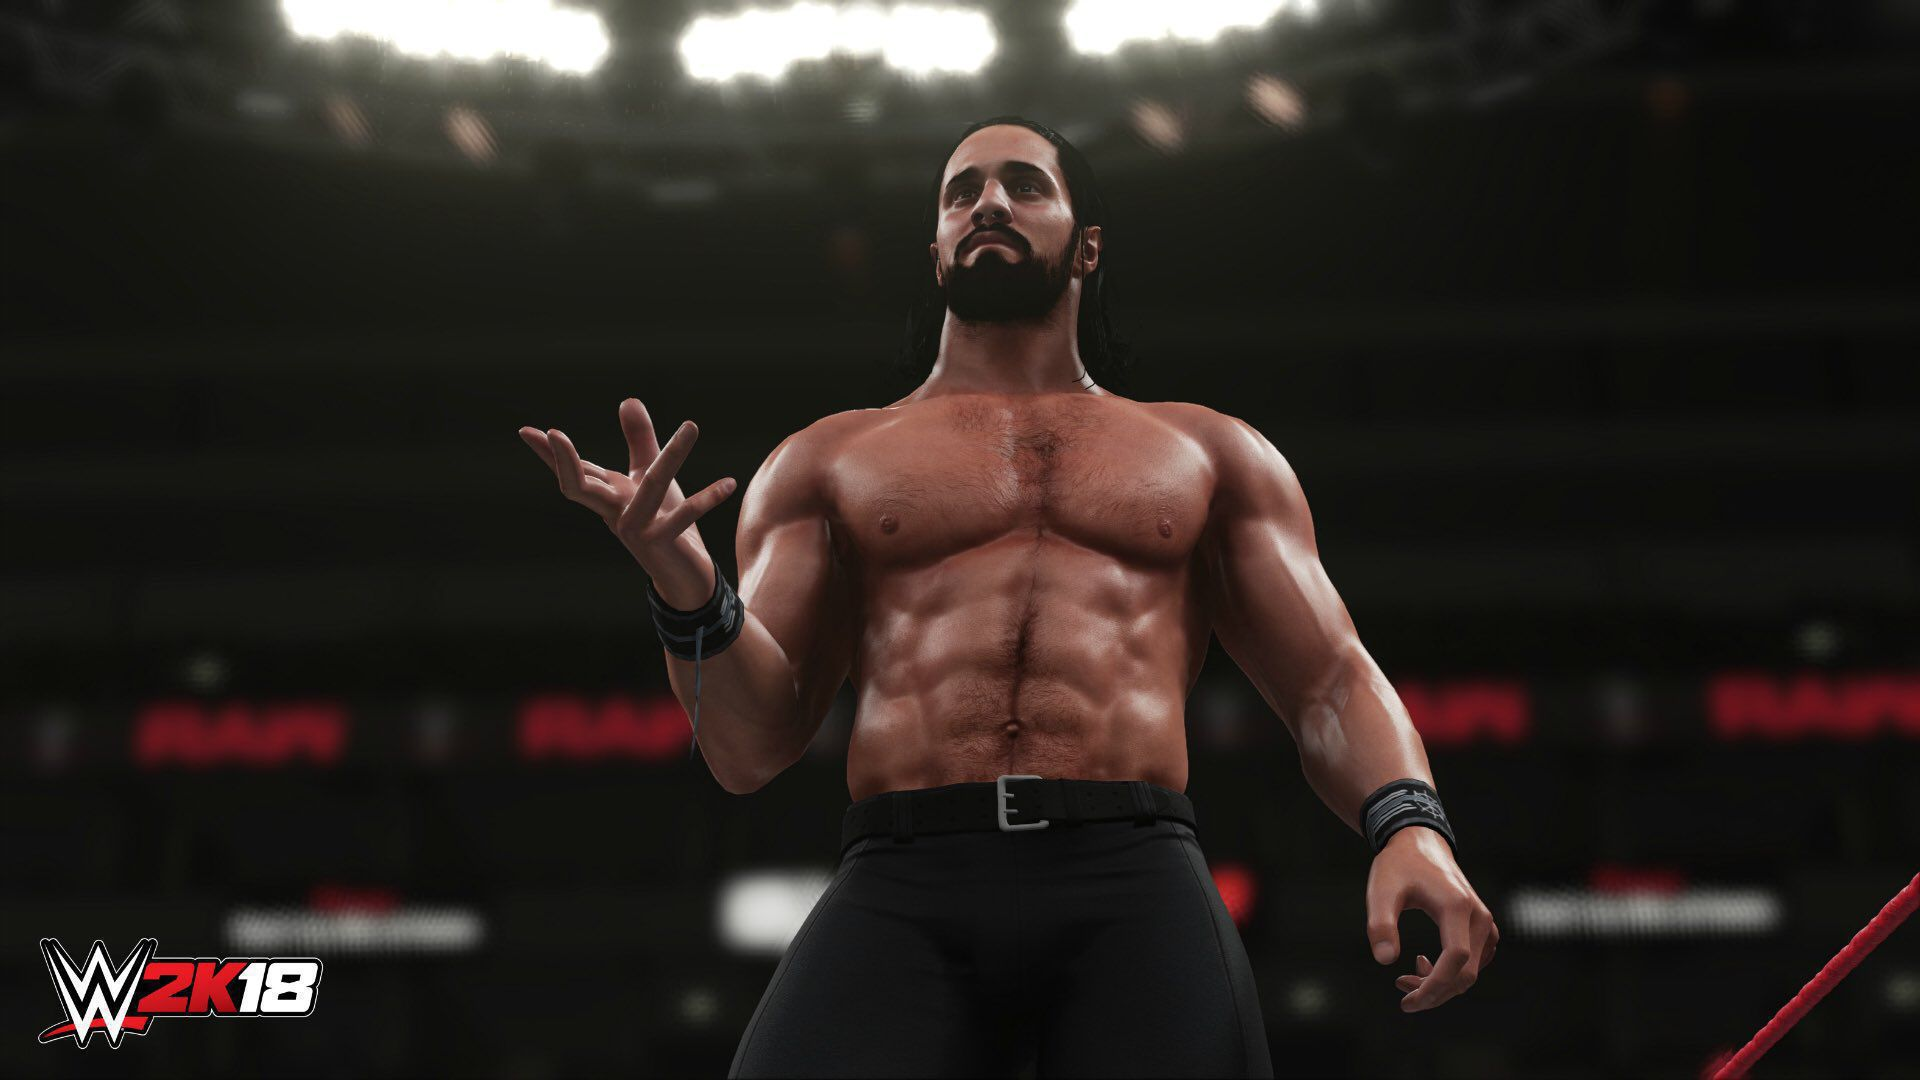 Wwe 2k18 HD Wallpaper